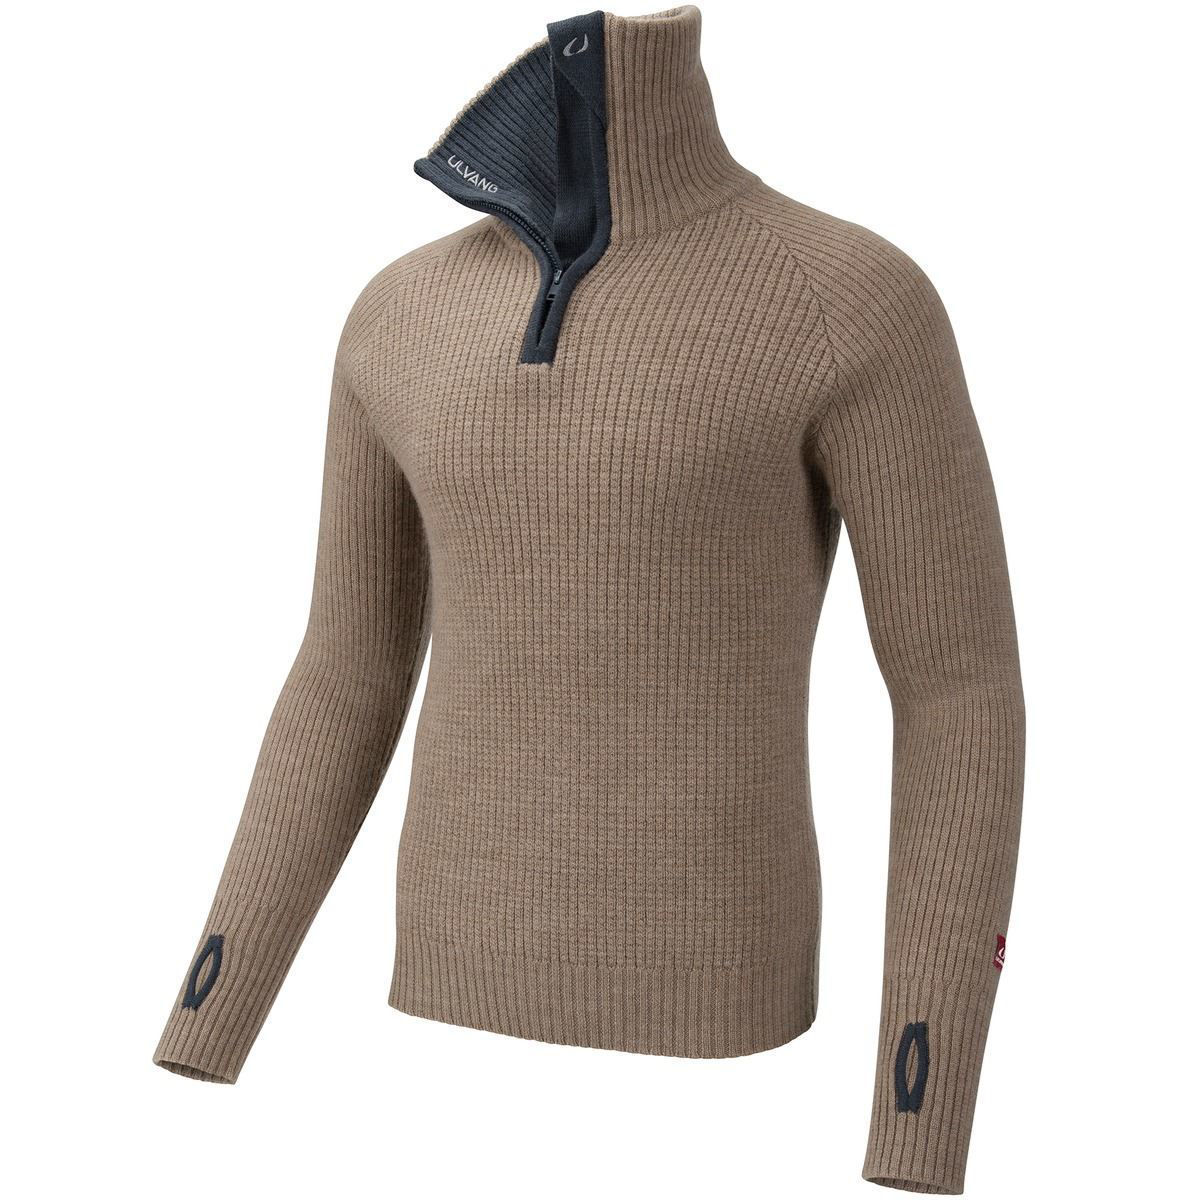 Bilde av Rav sweater w/zip